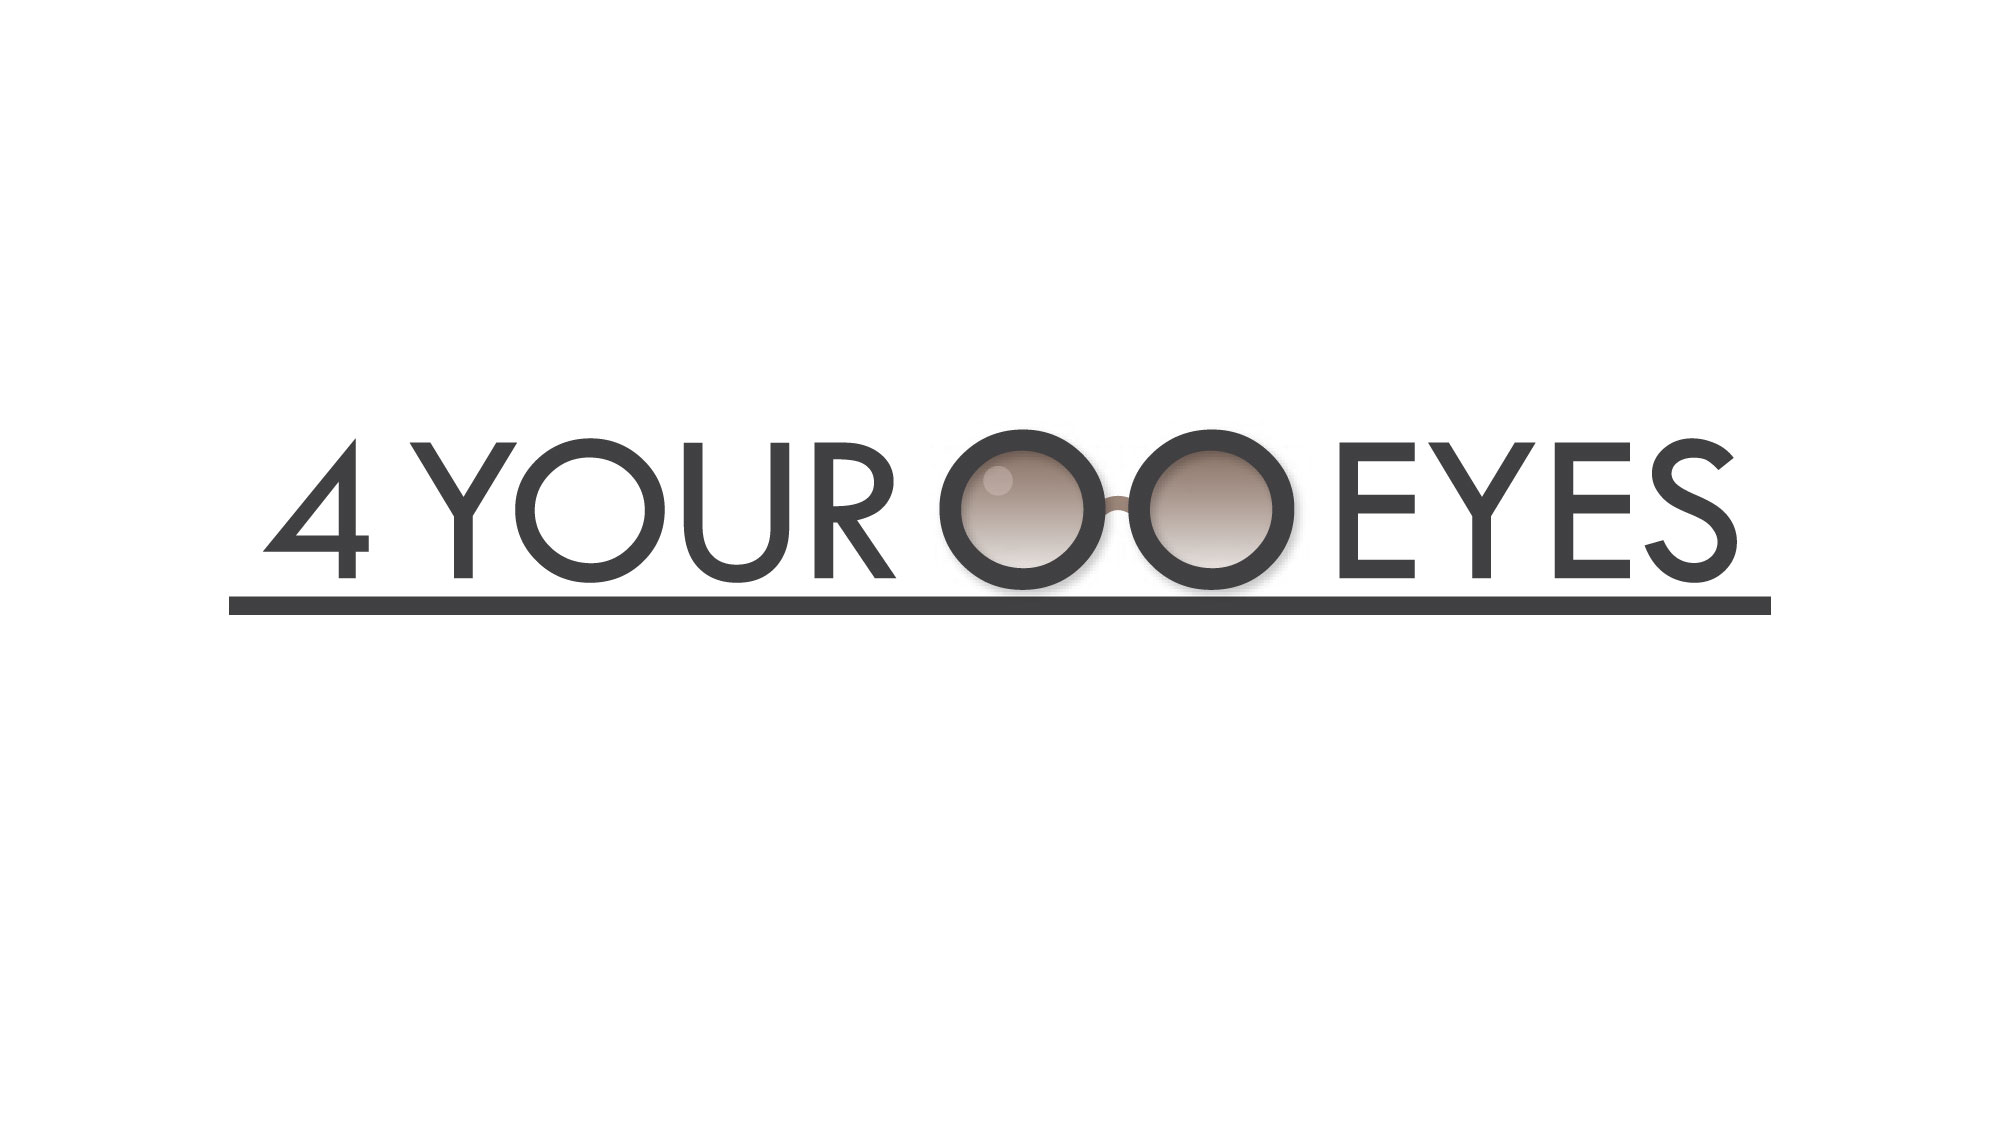 4 YOUR EYES